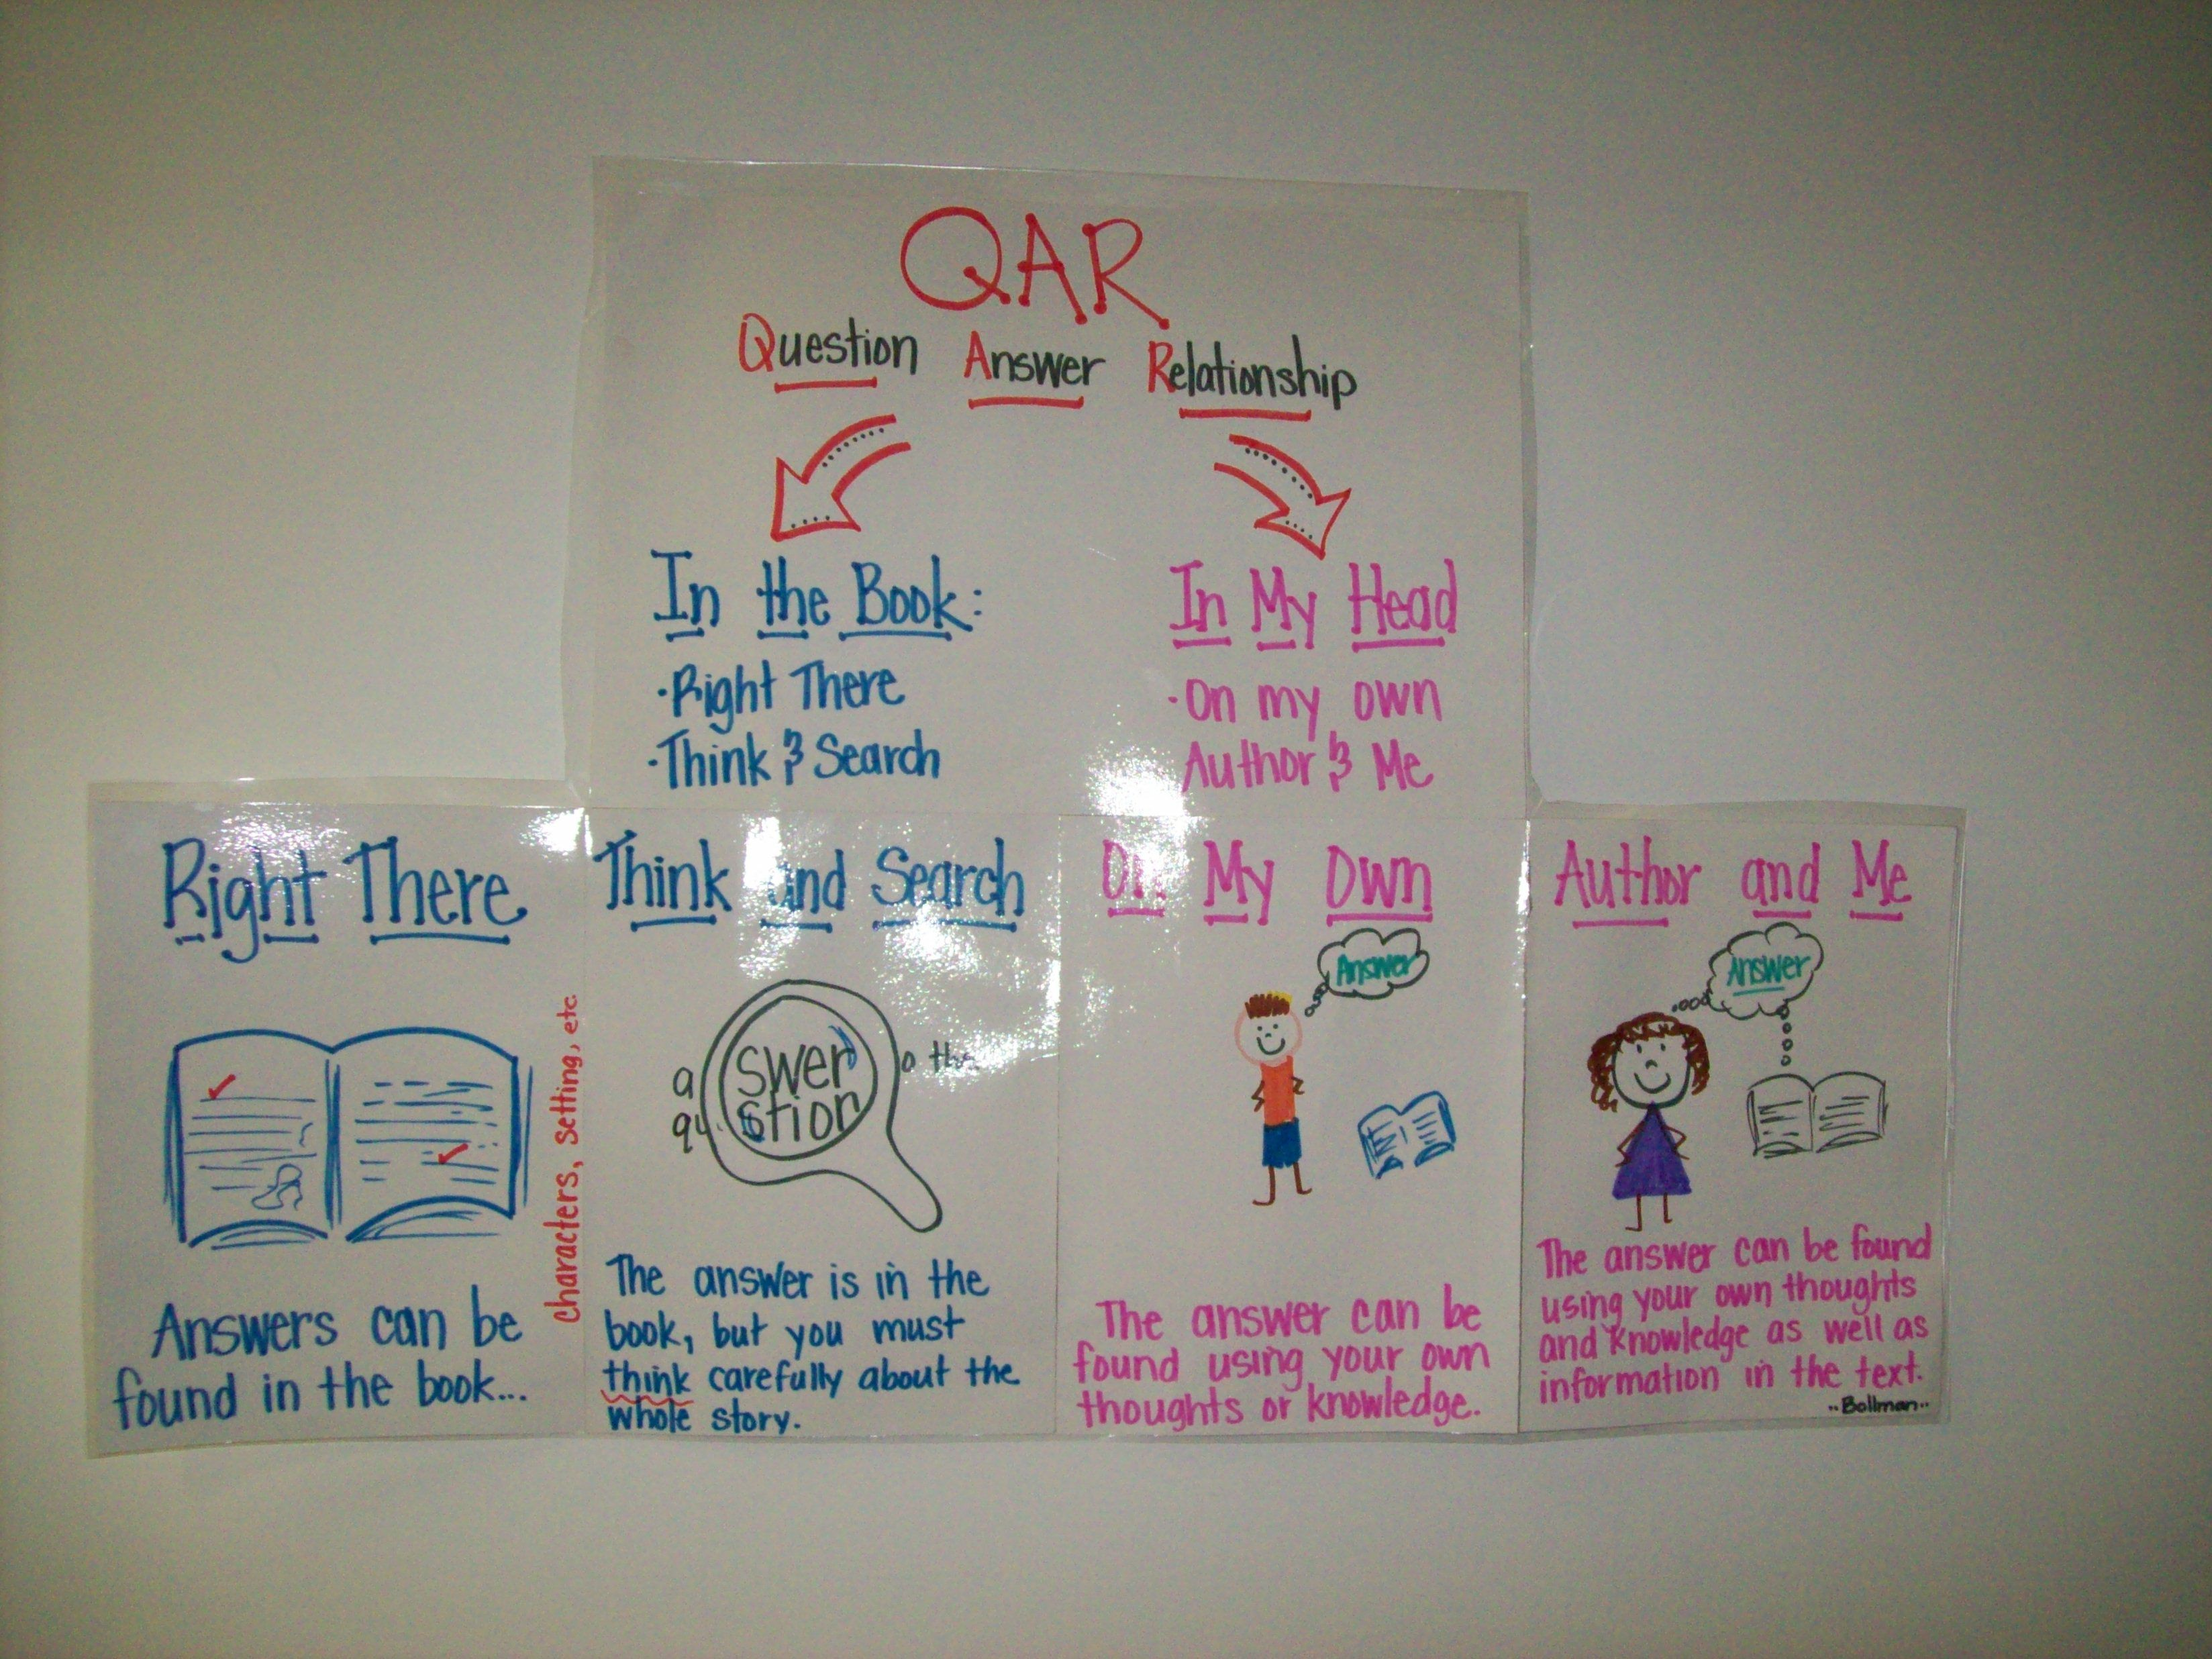 Question Answer Relationship Qar Poster